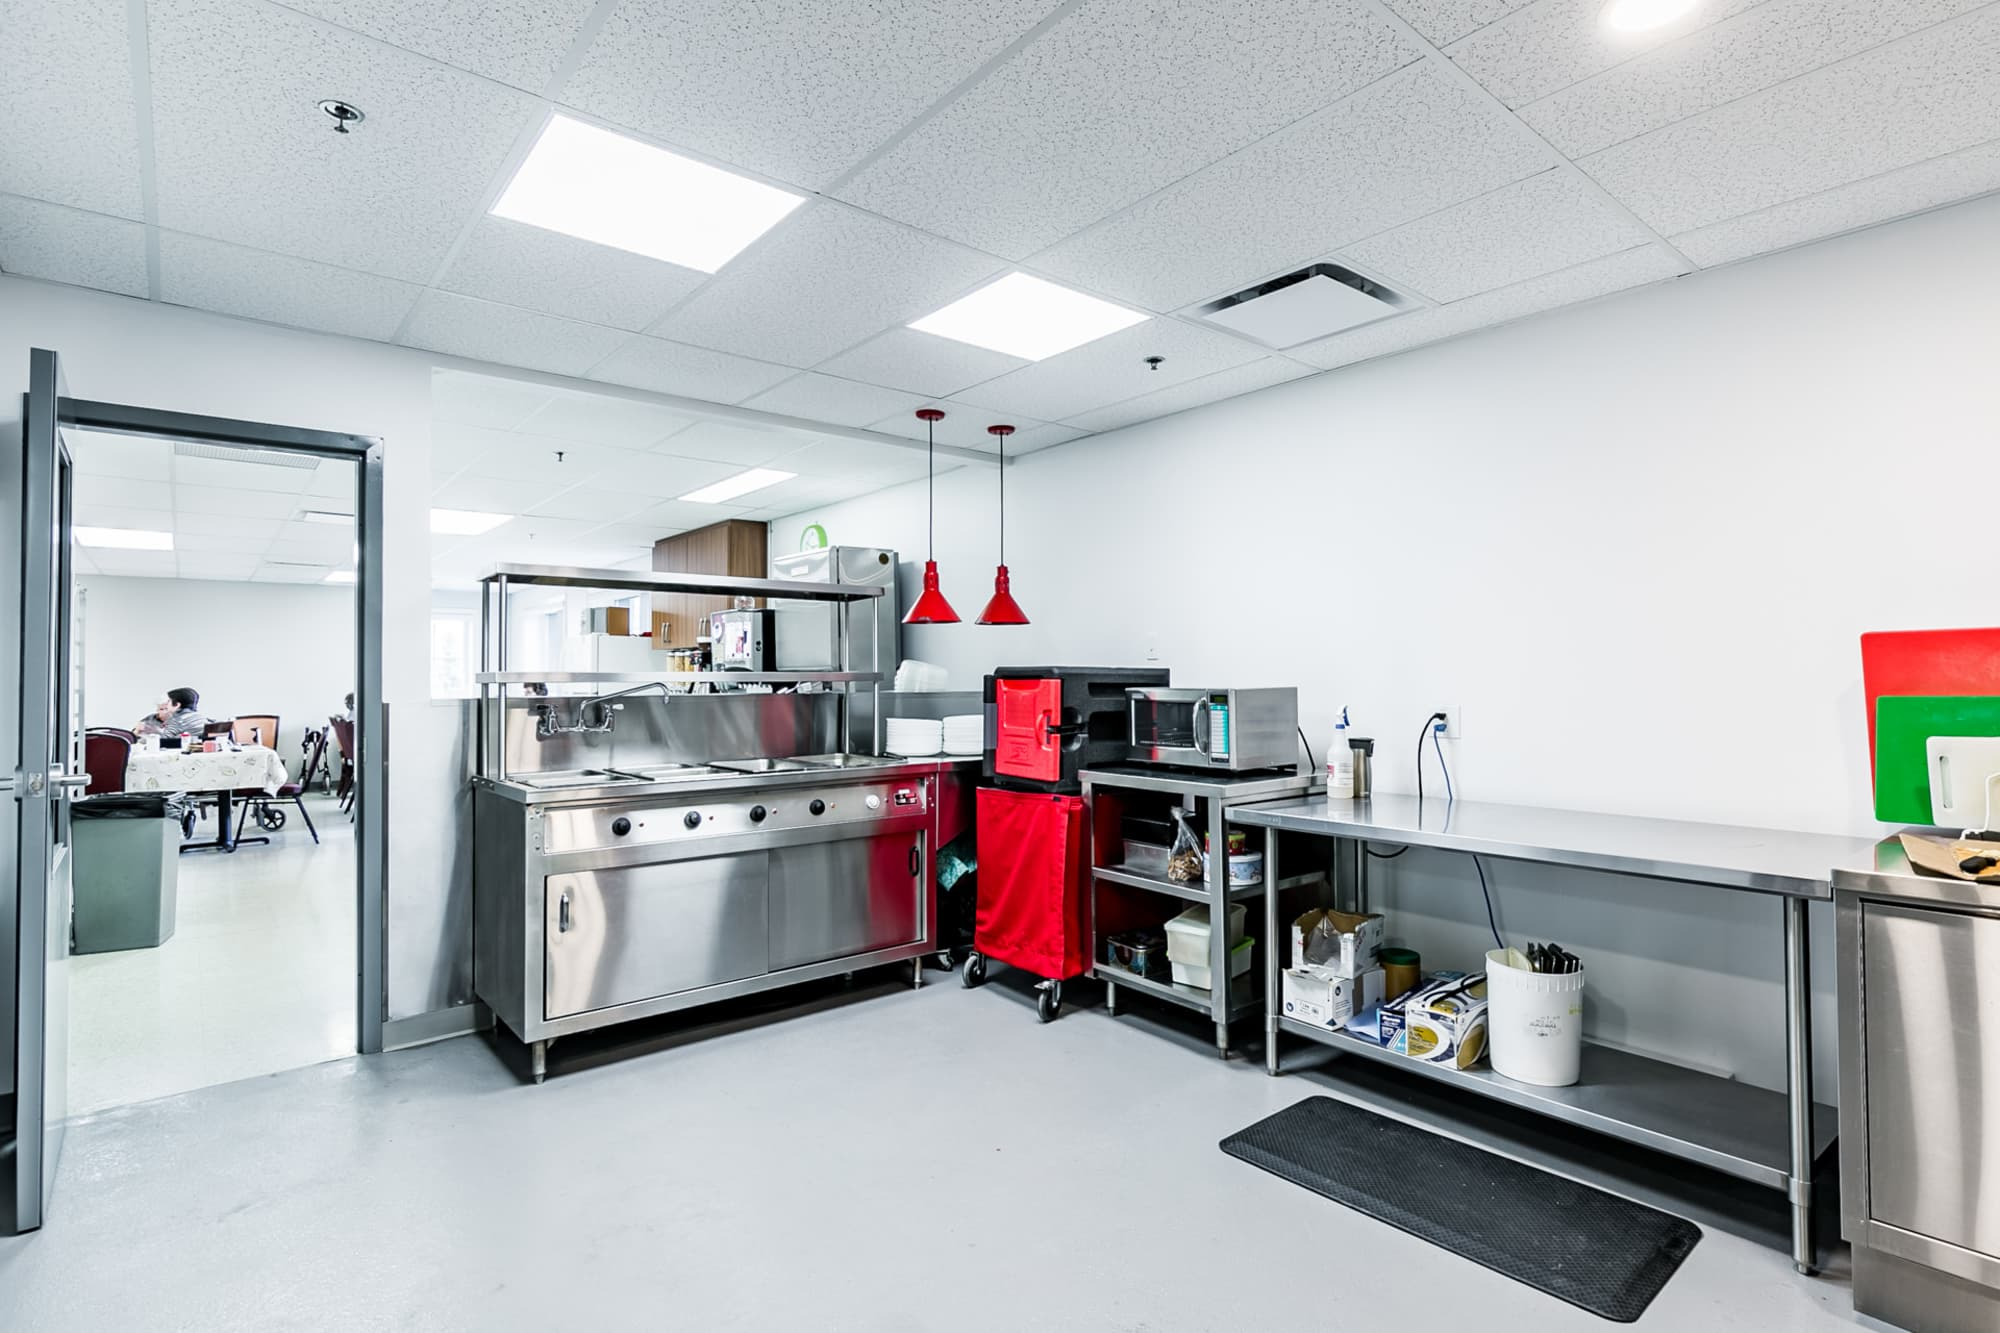 commercial kitchen with stainless steel equipment